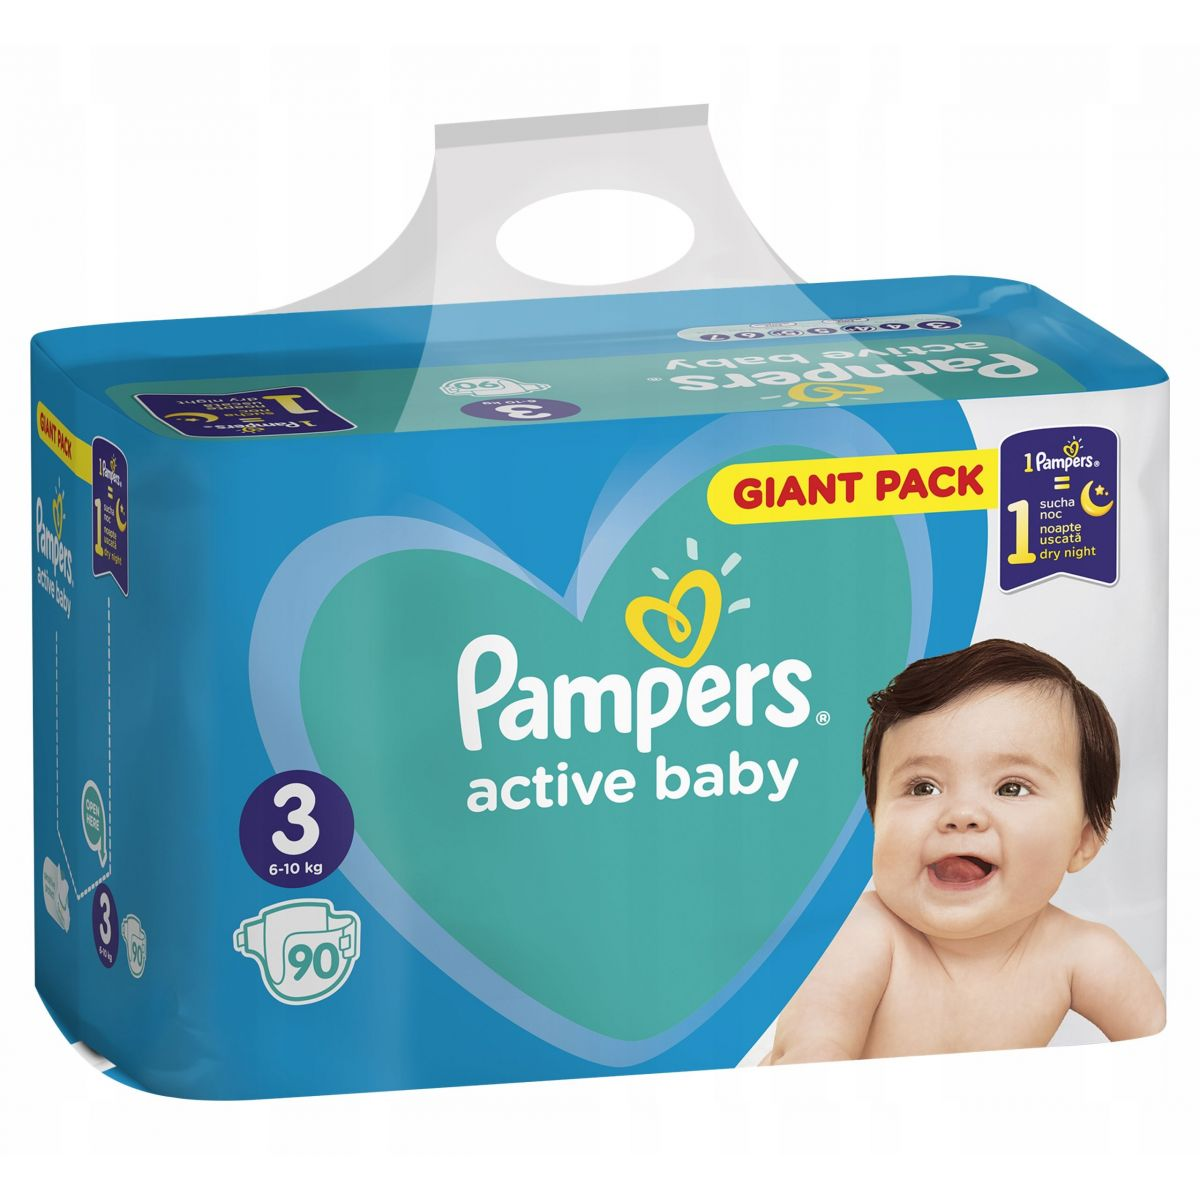 Pampers Active Baby Giant Pack S3 90ks